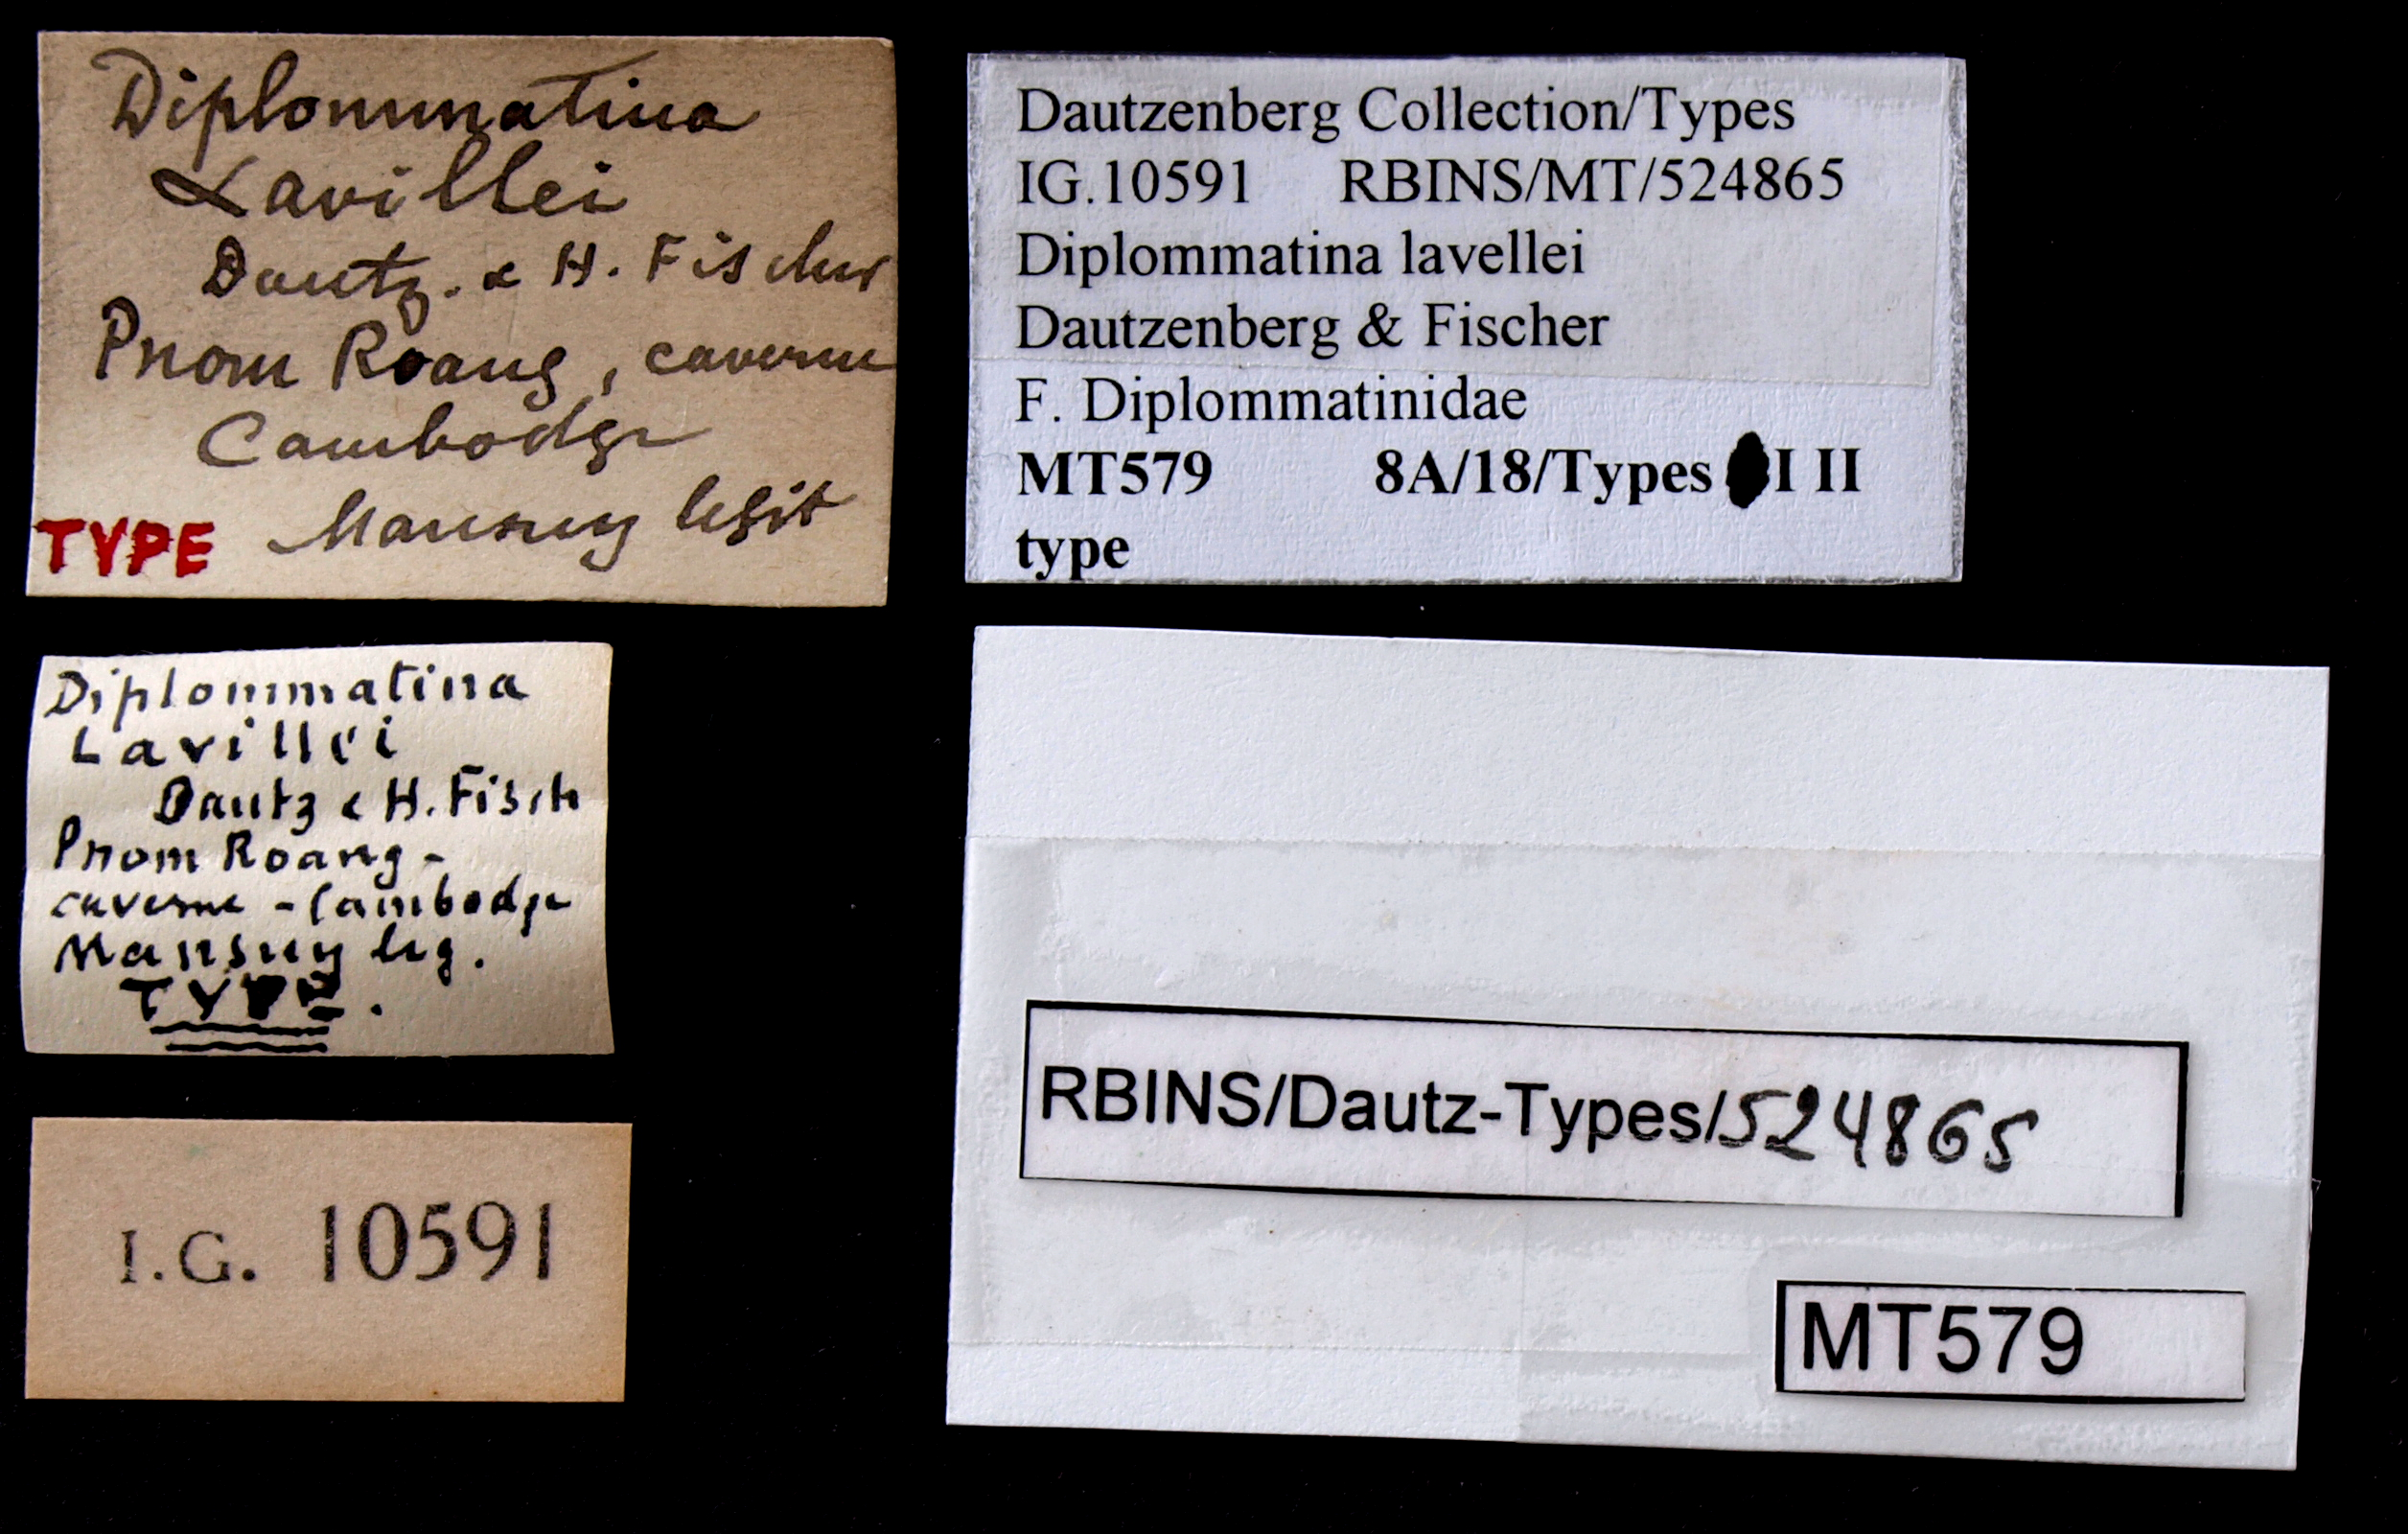 BE-RBINS-INV TYPE MT 579 Diplommatina lavillei LABELS.jpg